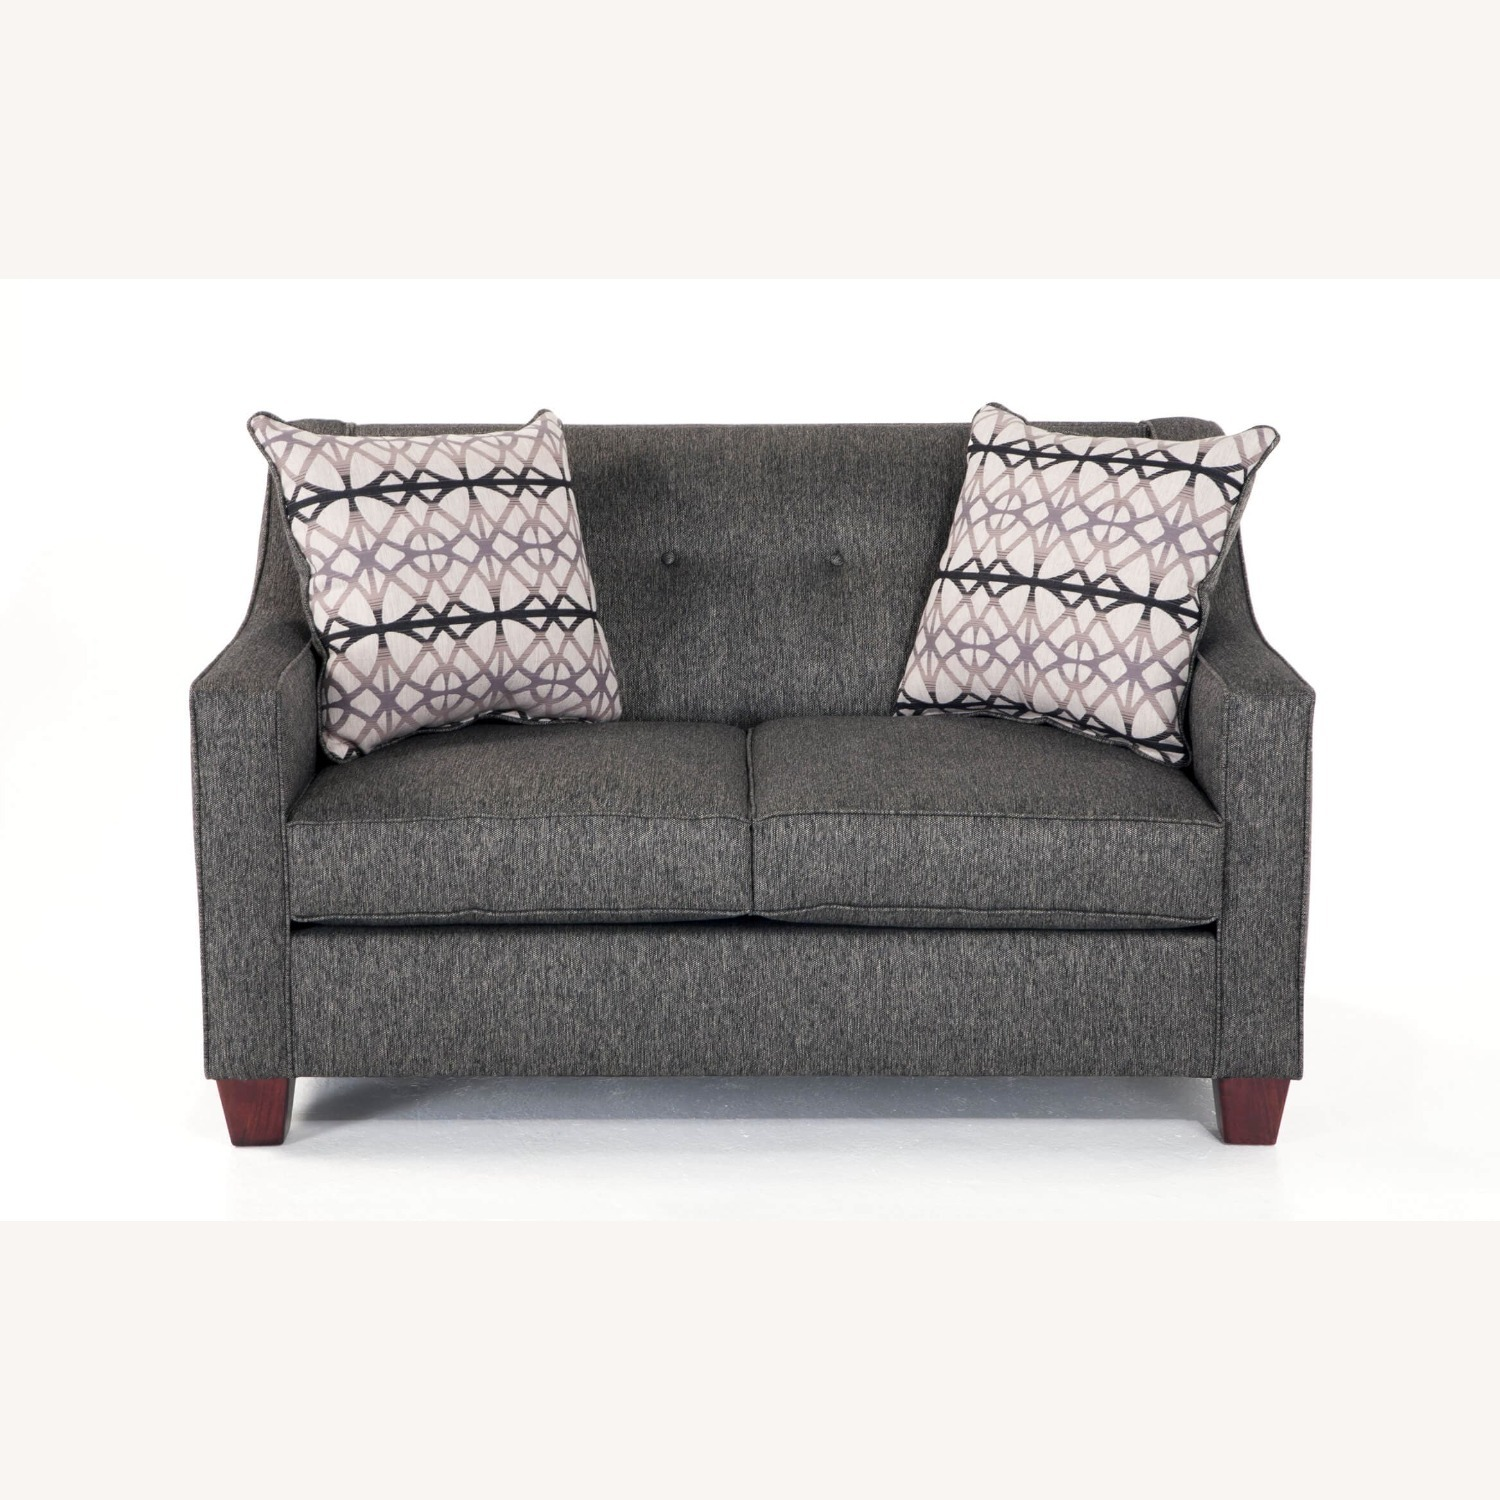 Bob's Discount Stylish & Comfortable Loveseat - image-1